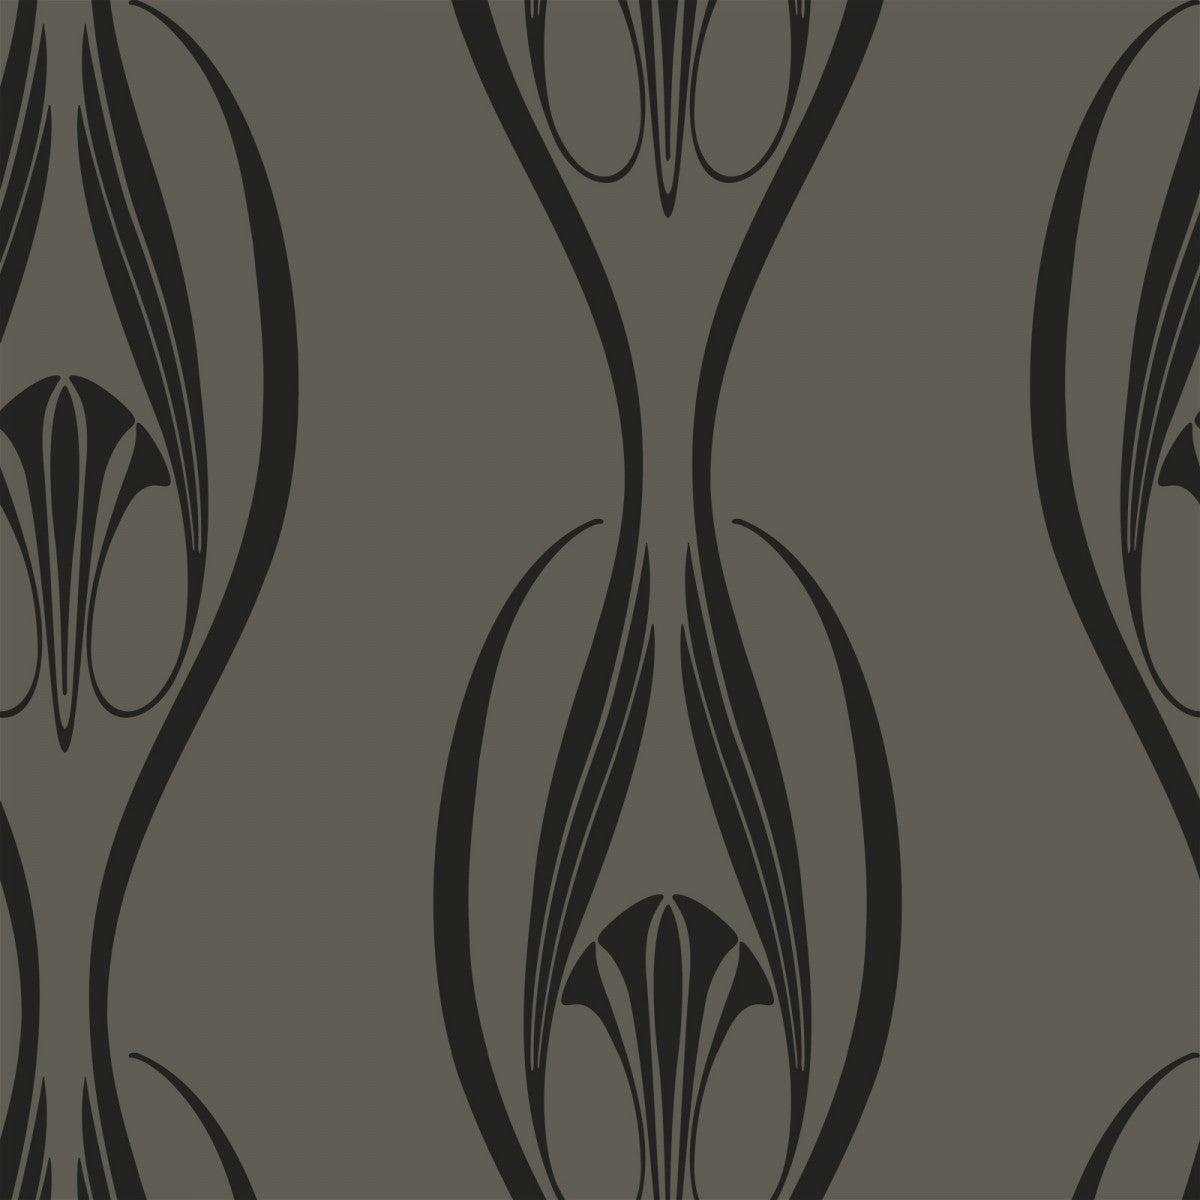 Black and Clay ET013 Etta Self-Adhesive Wallpaper